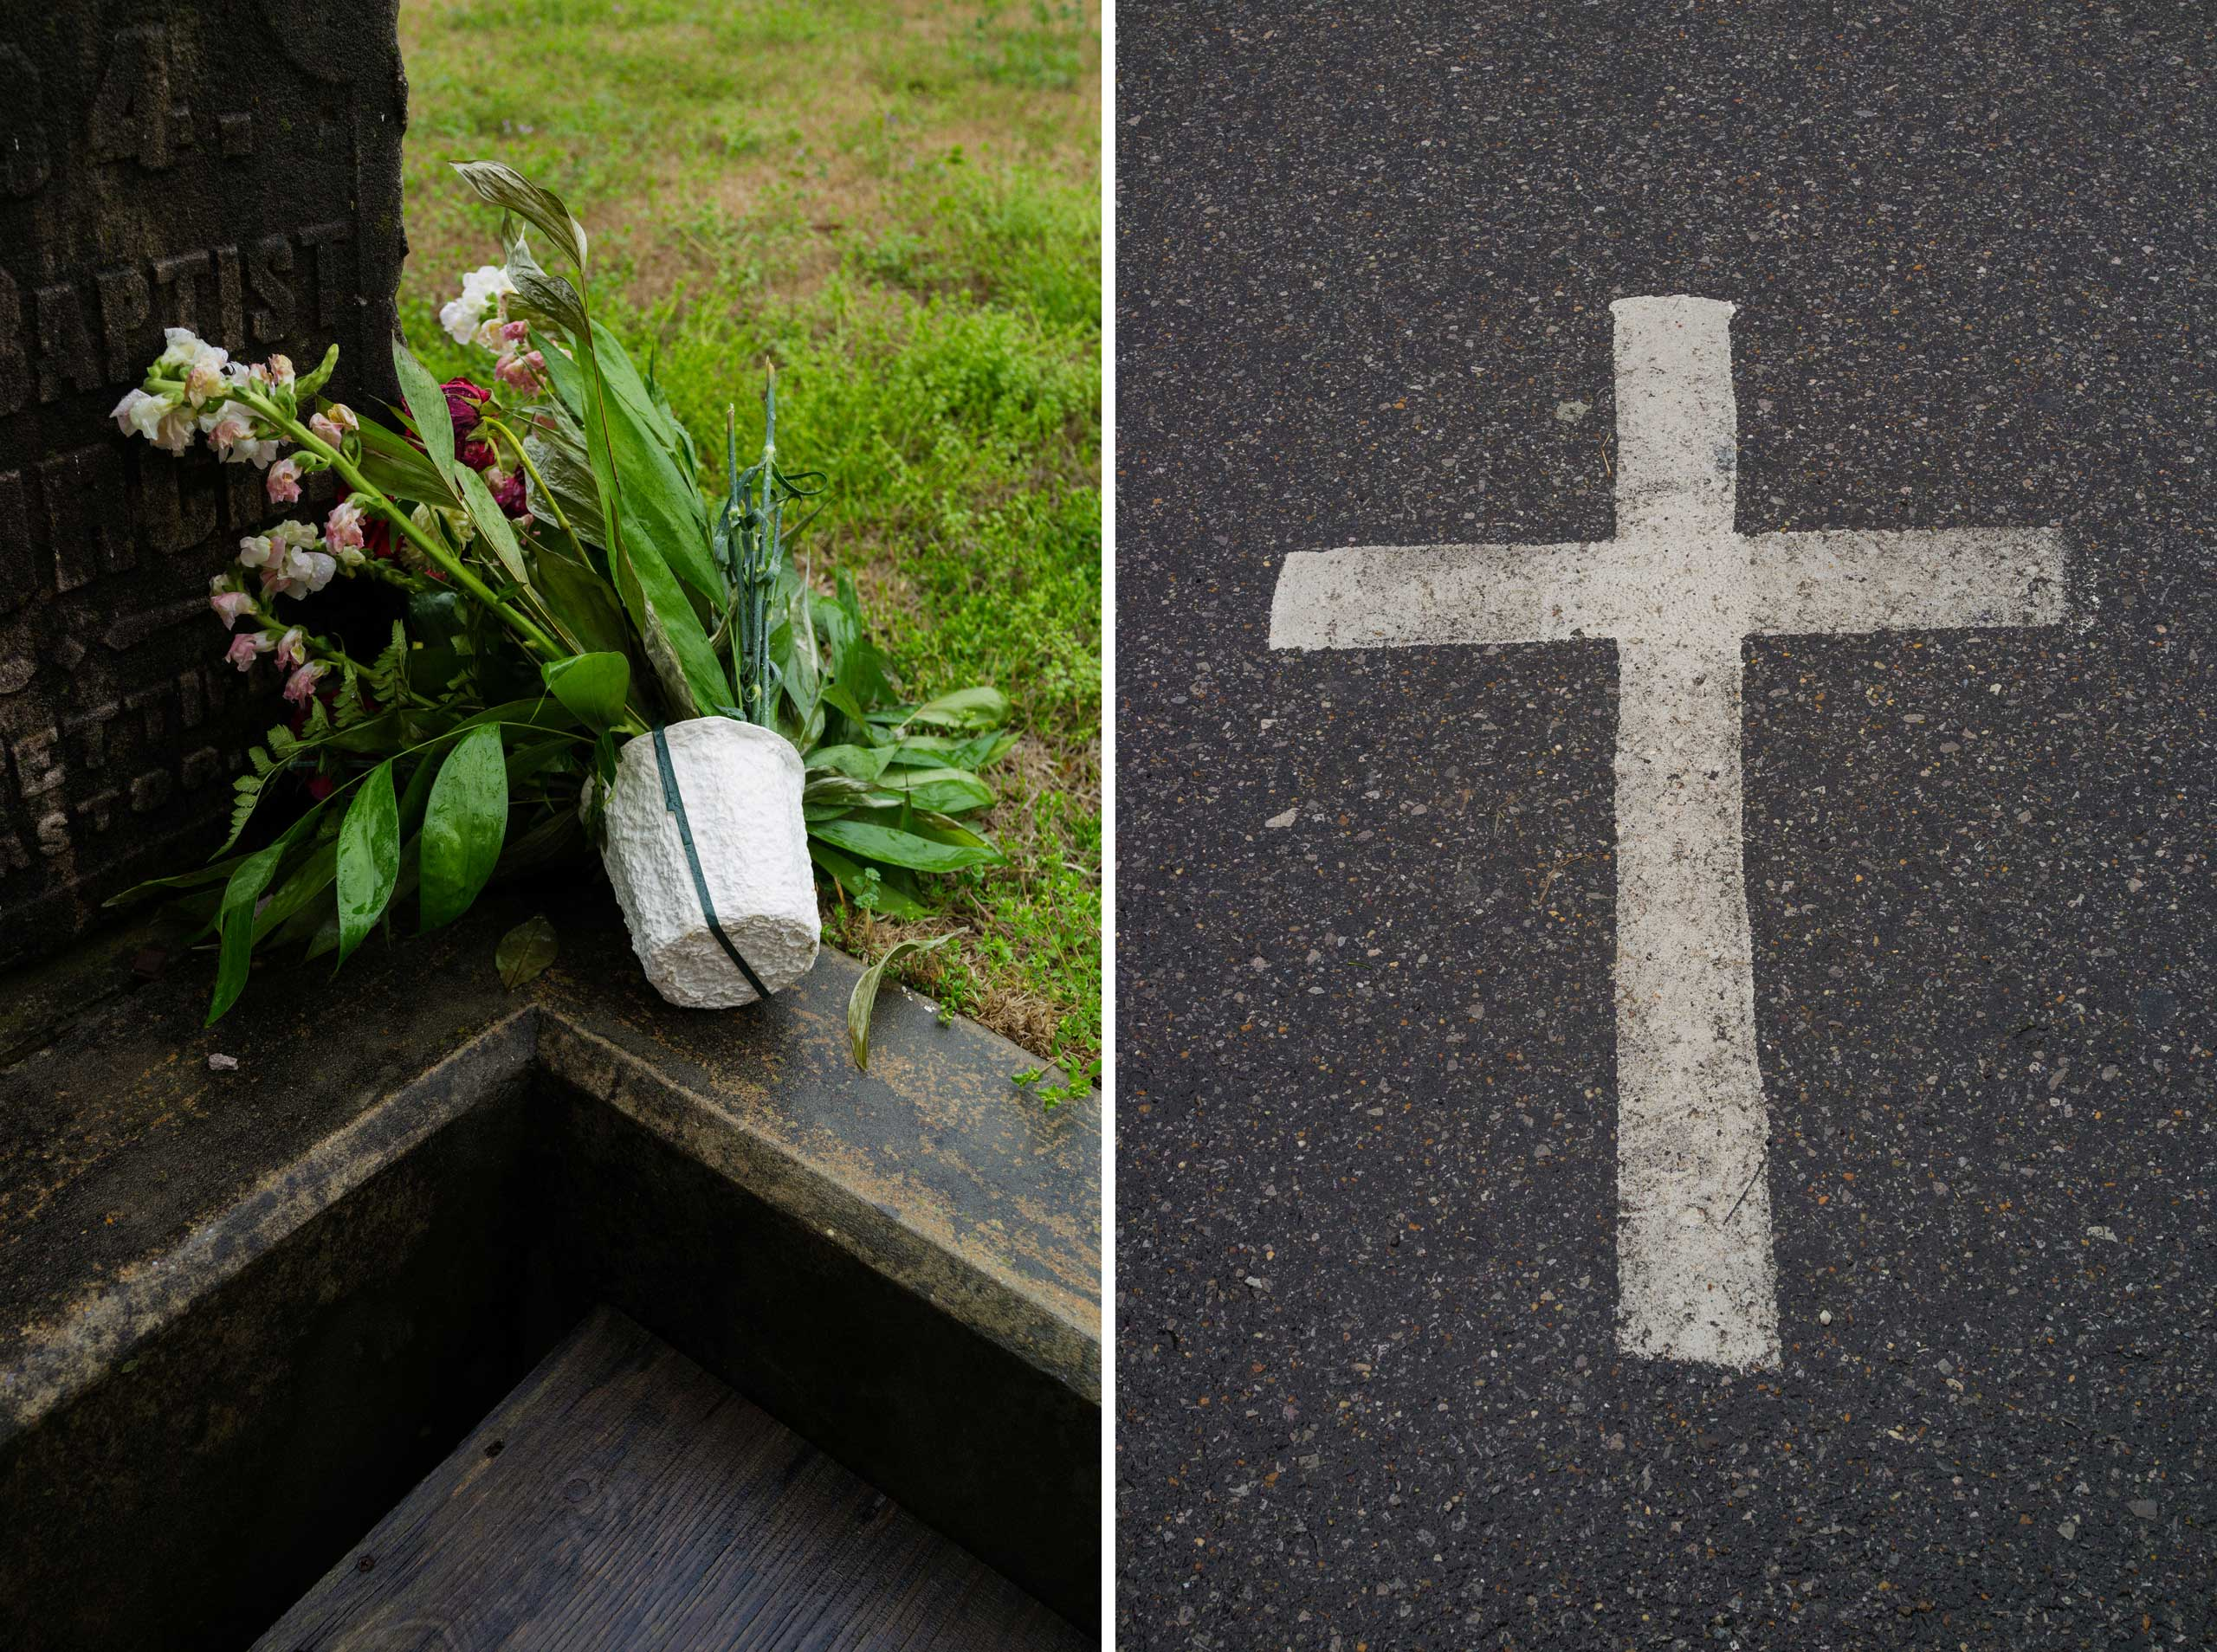 Left: Flowers at the cornerstone of the 16th Street Baptist Church. Right: A cross marks a parking spot outside the church